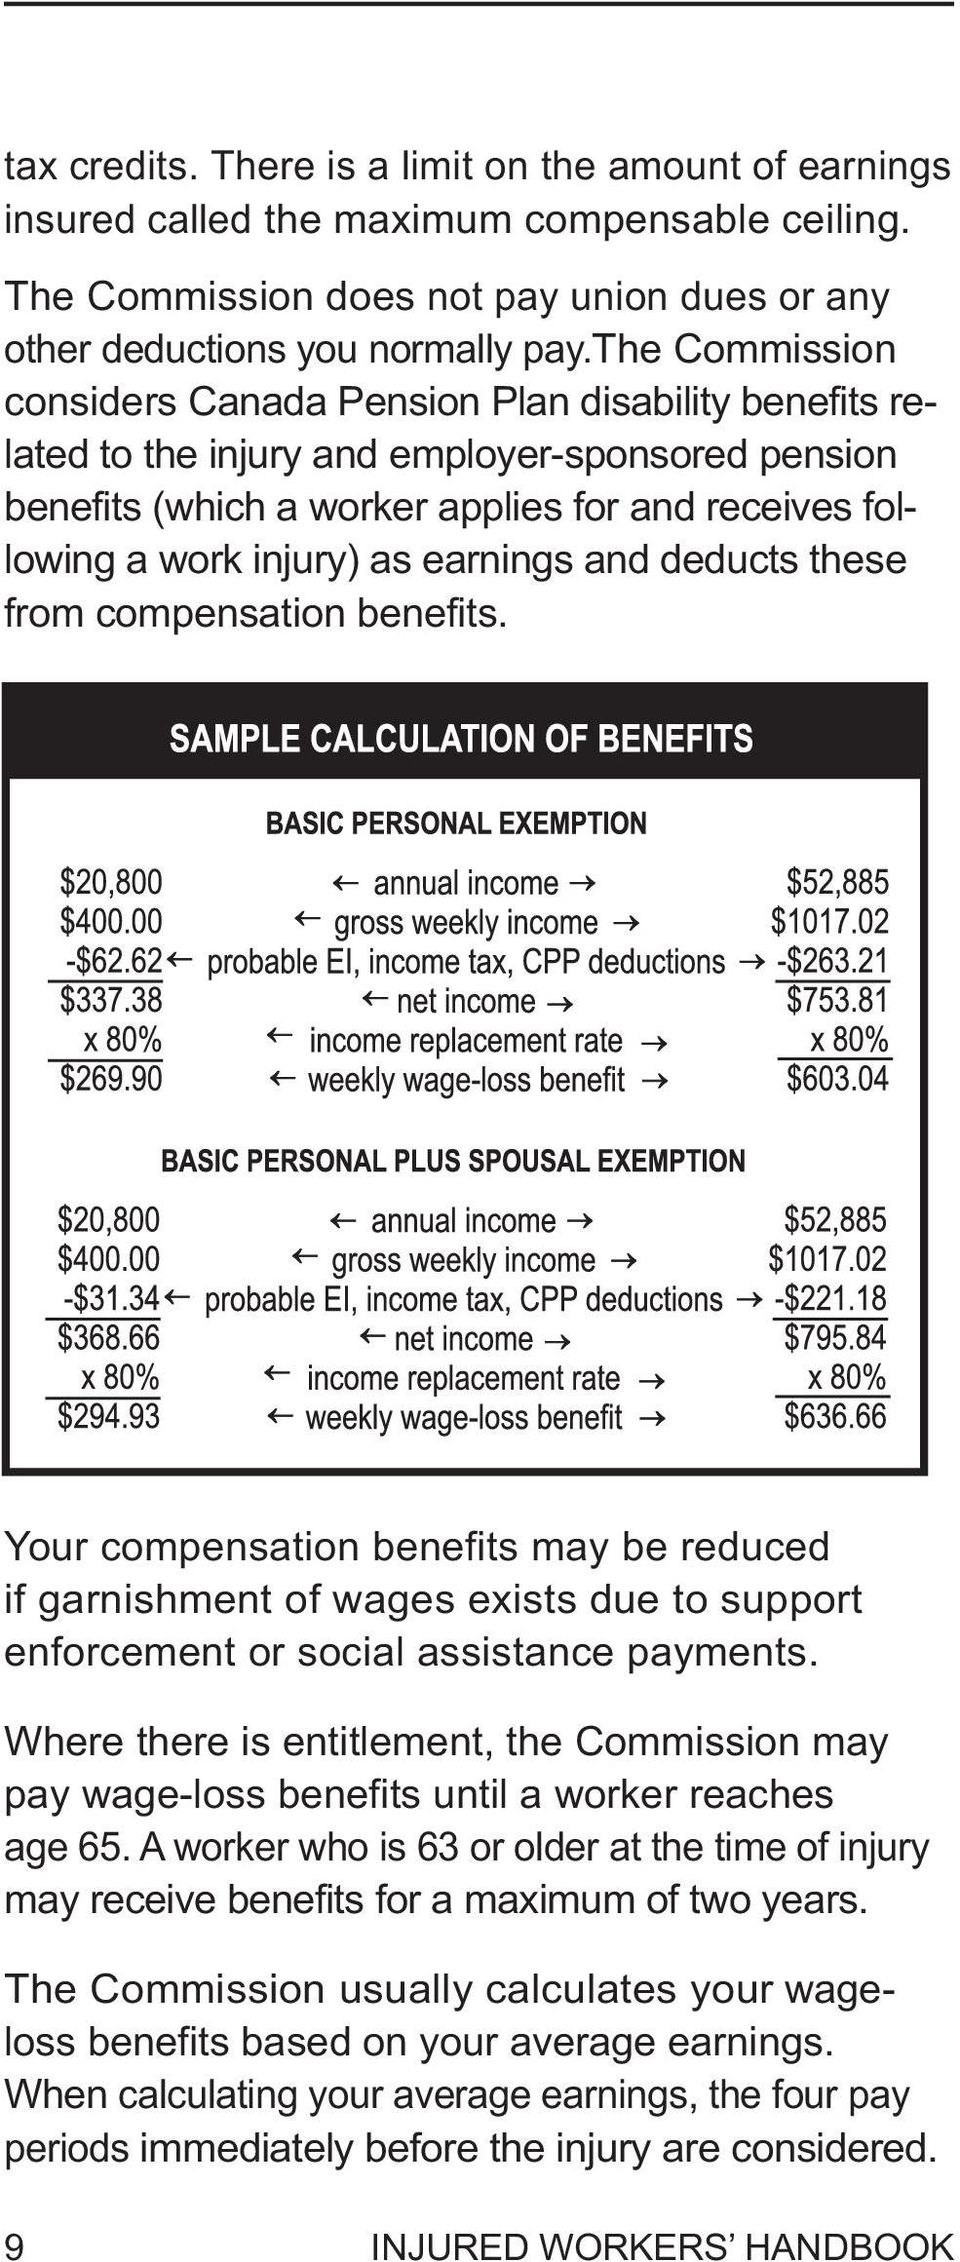 earnings and deducts these from compensation benefits. Your compensation benefits may be reduced if garnishment of wages exists due to support enforcement or social assistance payments.